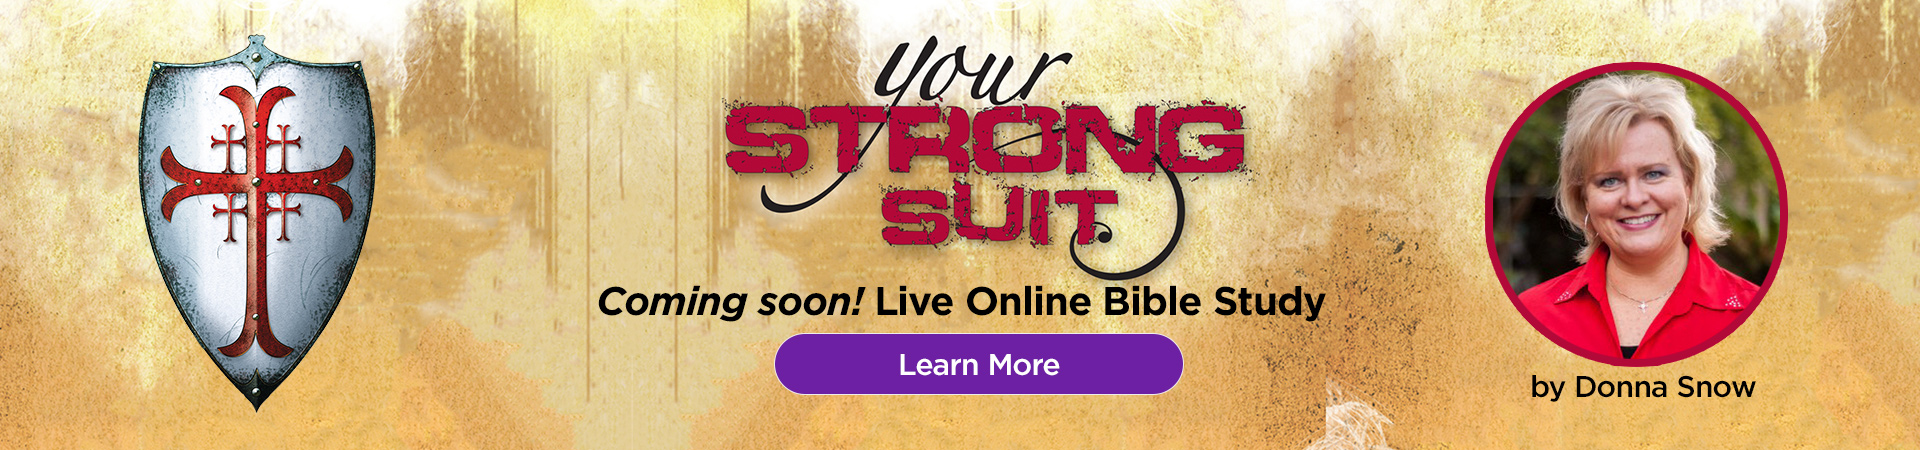 Your Strong Suit online Bible Study with Donna Snow coming soon! Learn more.